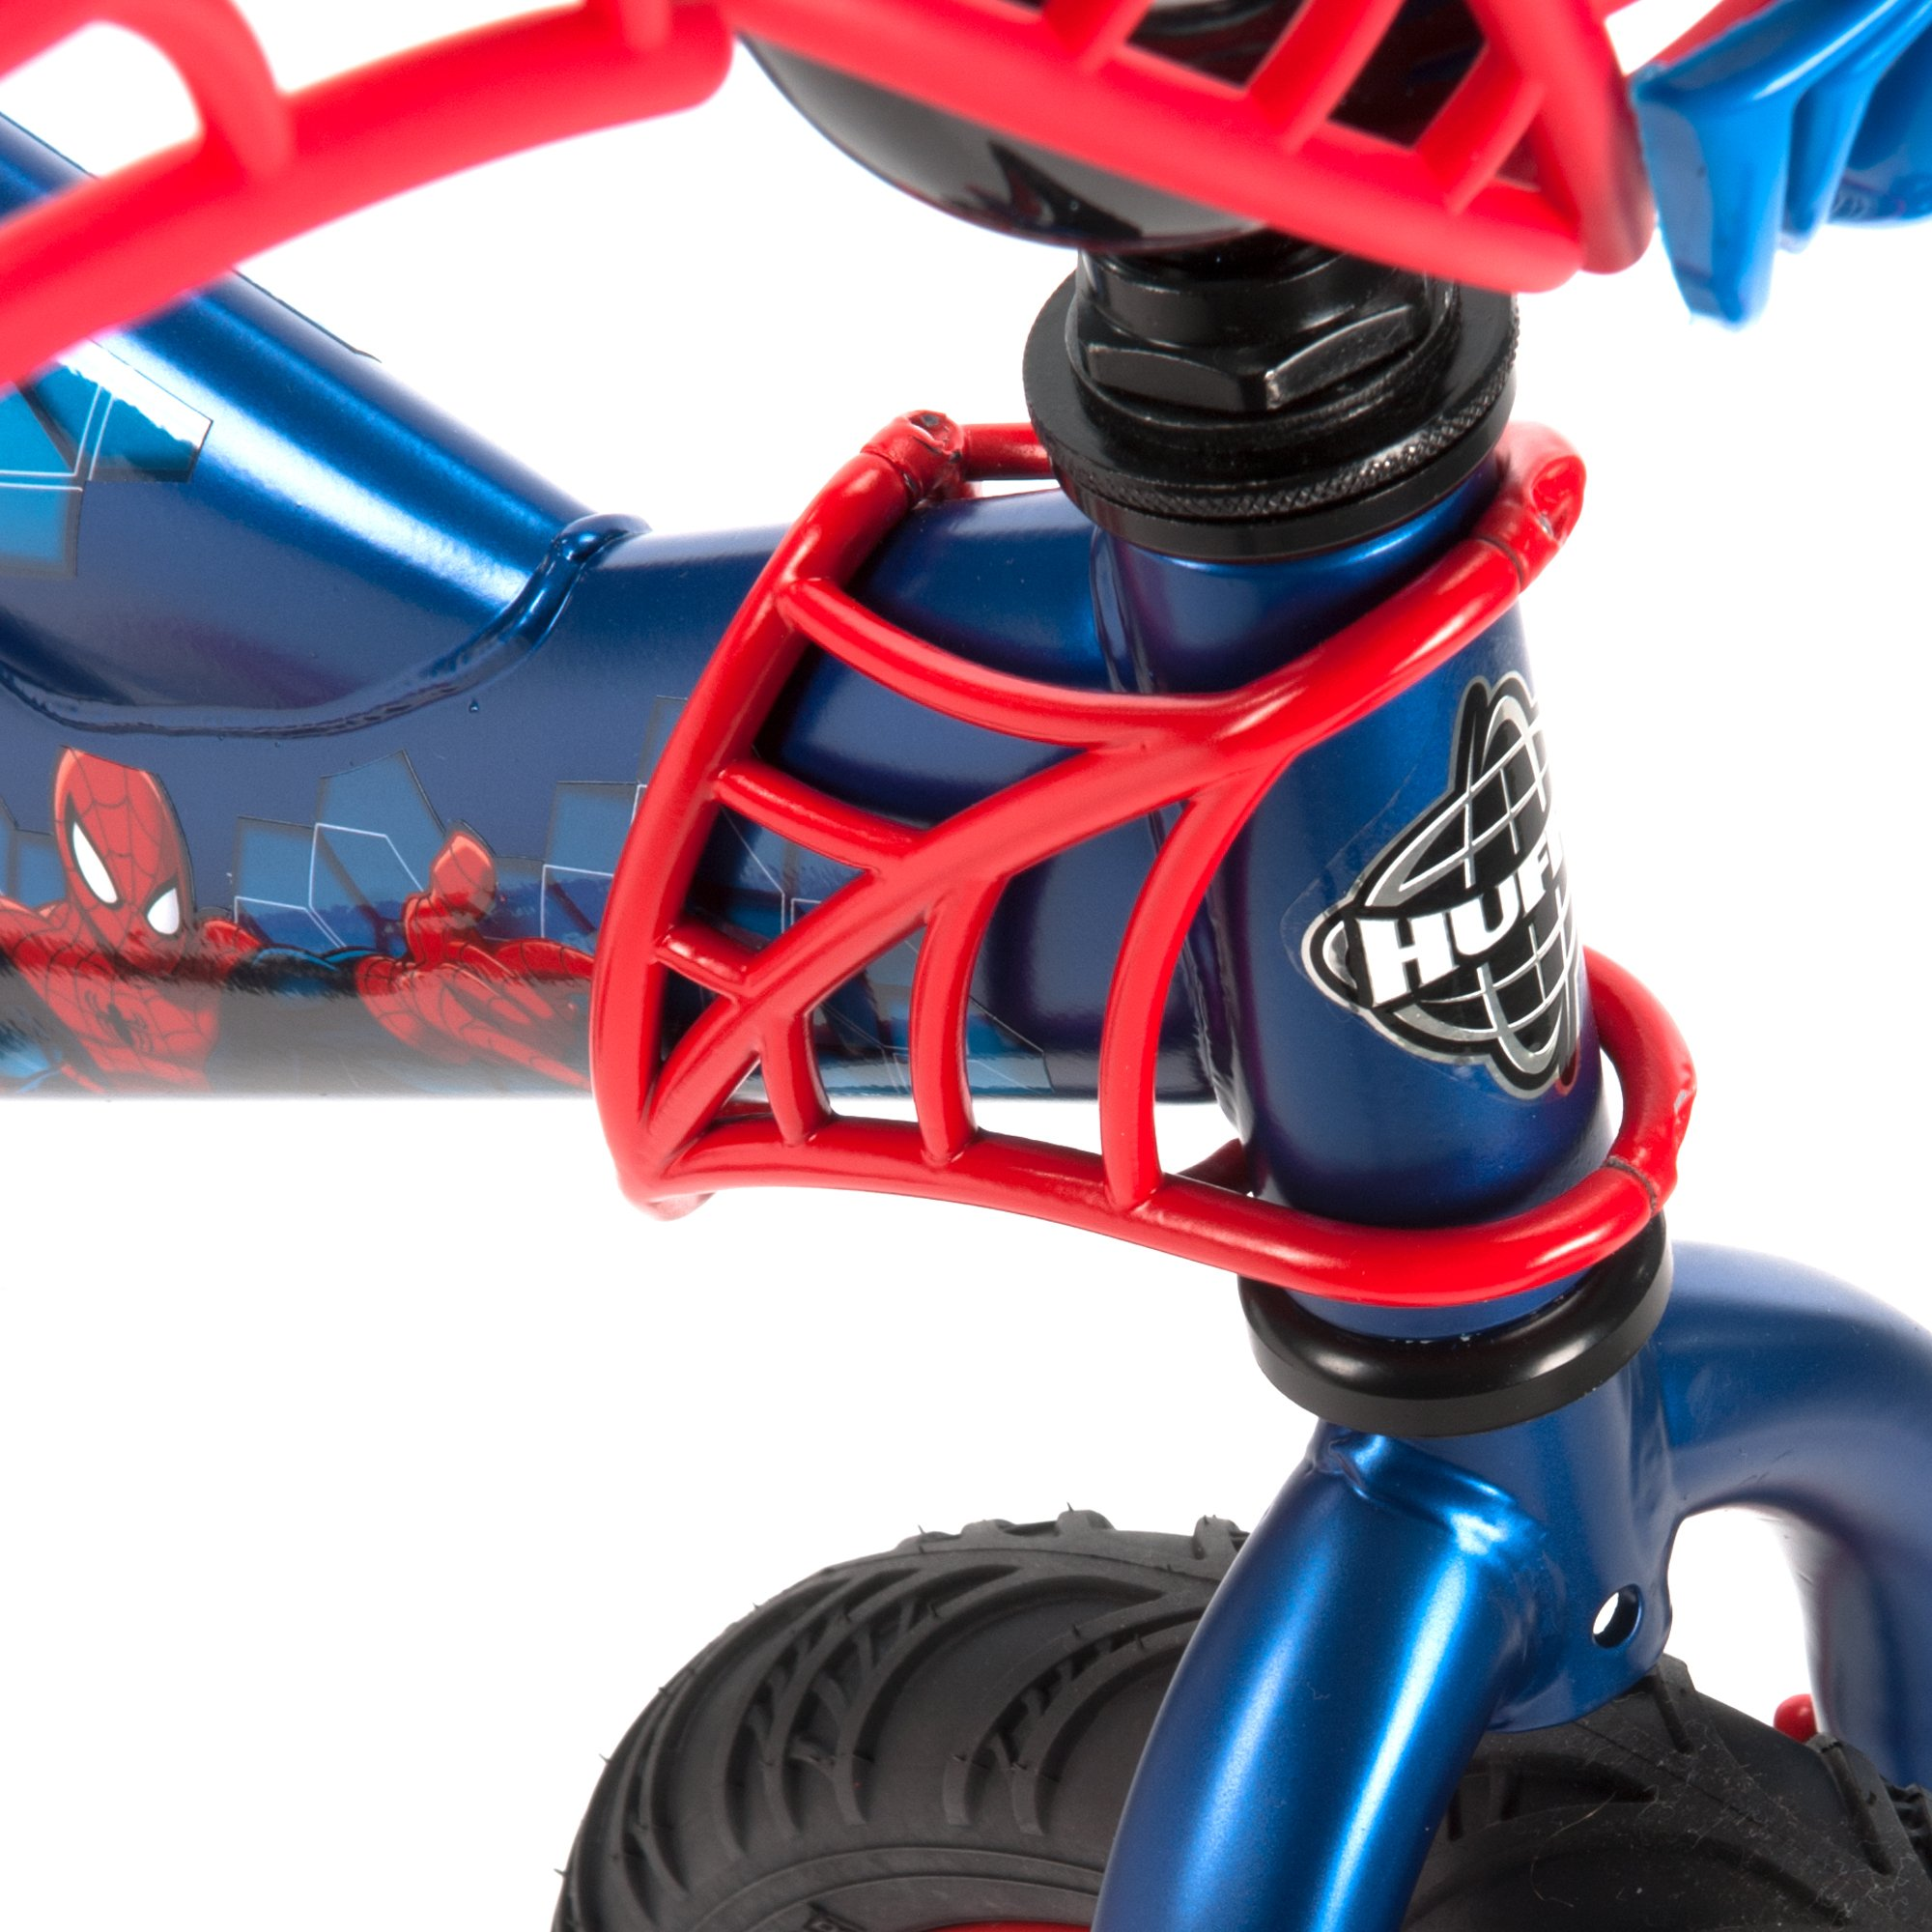 16'' Marvel Spider-Man Bike by Huffy, Ages 4-6, Height 42-48'' by Huffy (Image #5)